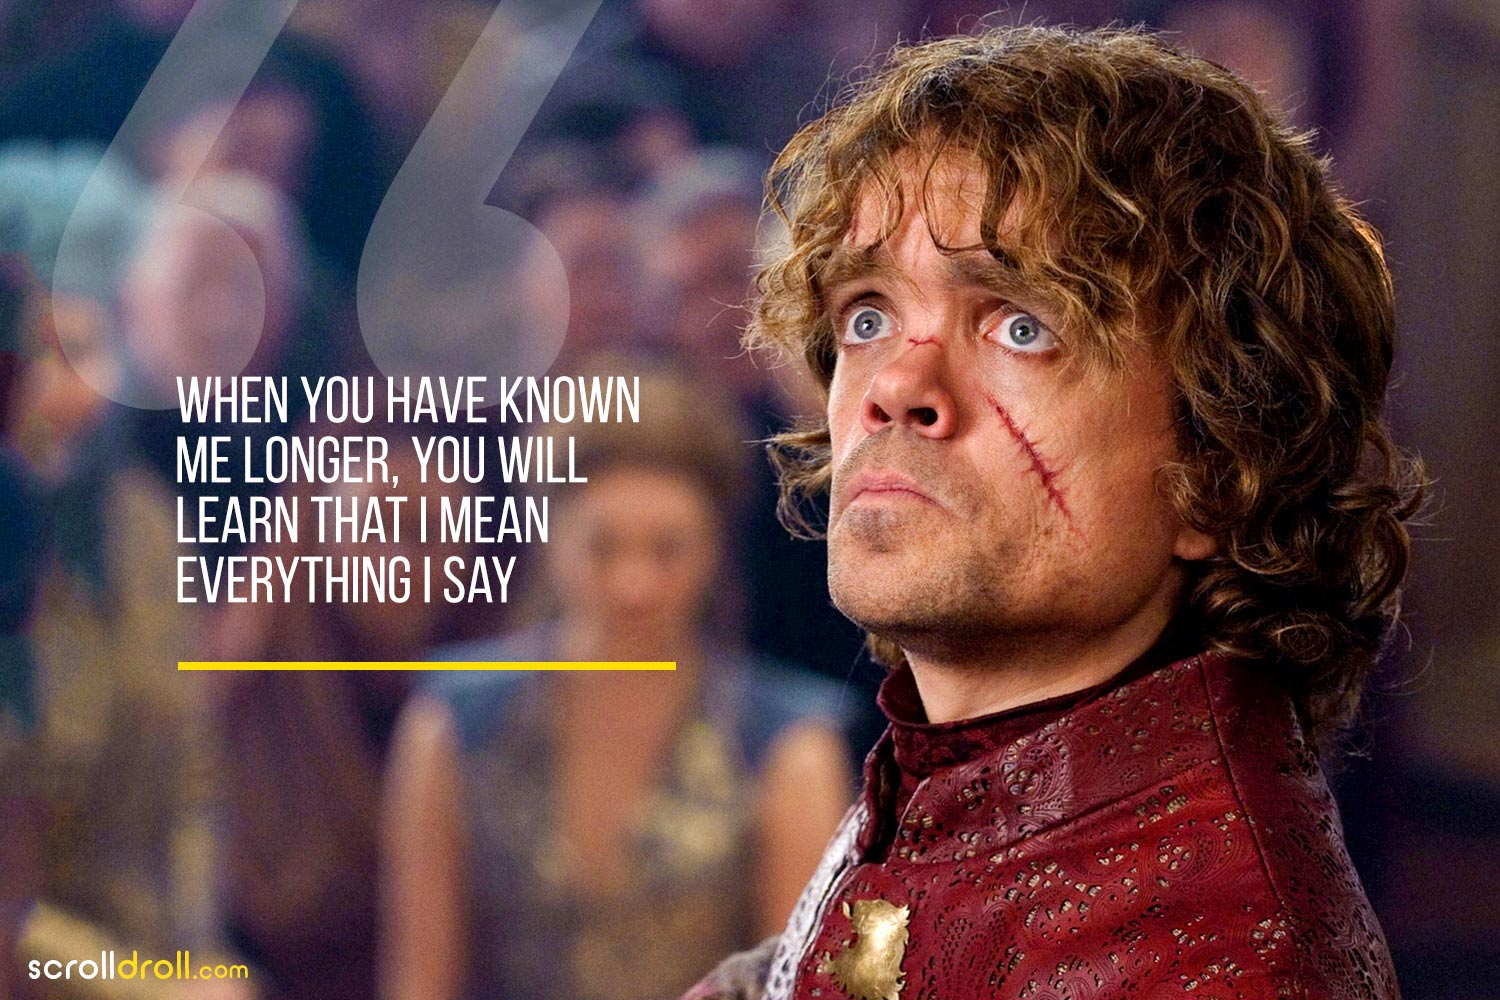 Tyrion-When you have known me longer that you will learn that i mean everything i say